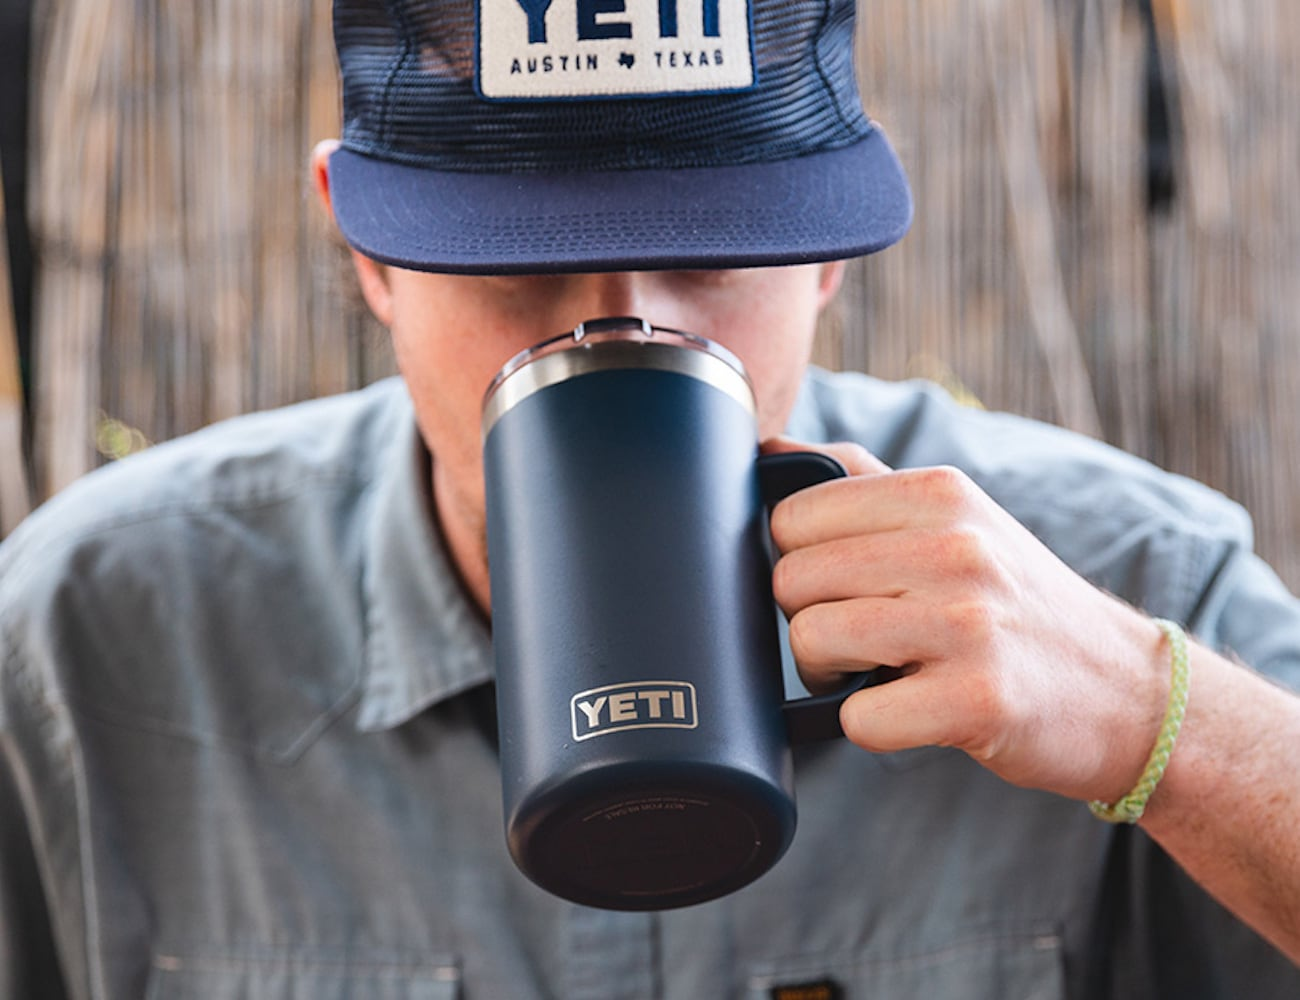 YETI Rambler 24 oz Beer Mug keeps your beverages nice and frosty